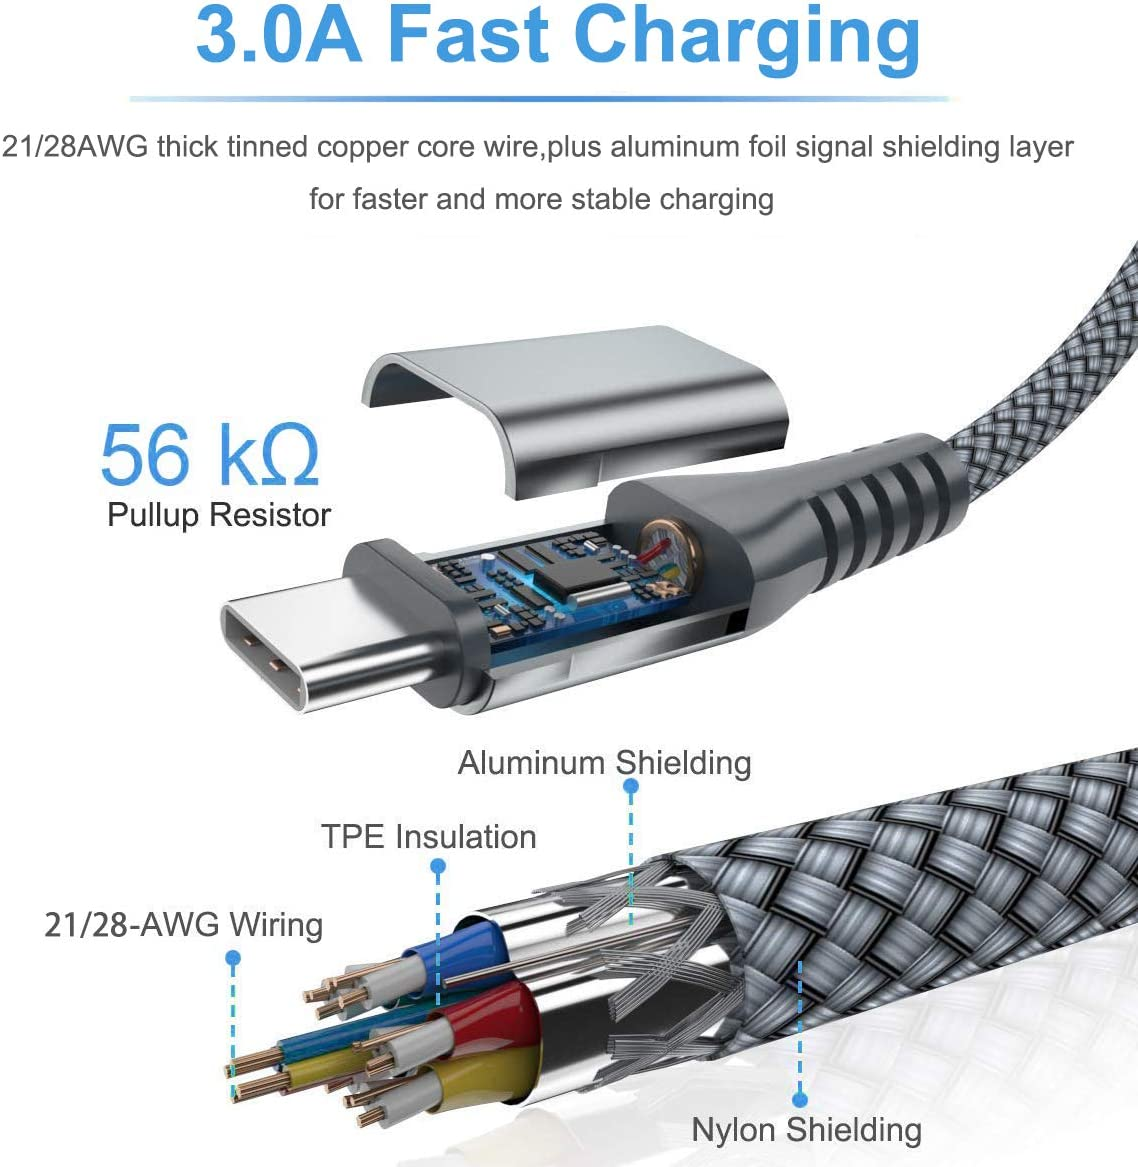 USB-A to USB-C Charger Cable,Nylon Braided Cord for Samsung Galaxy S10 S10E S9 S8 Plus Note 10 9 8,LG G8 G7 V40 V30,Moto Z 10ft+6.6ft+3.3ft red USB Type C Cable 3.0A Fast Charging,Sweguard 3-Pack